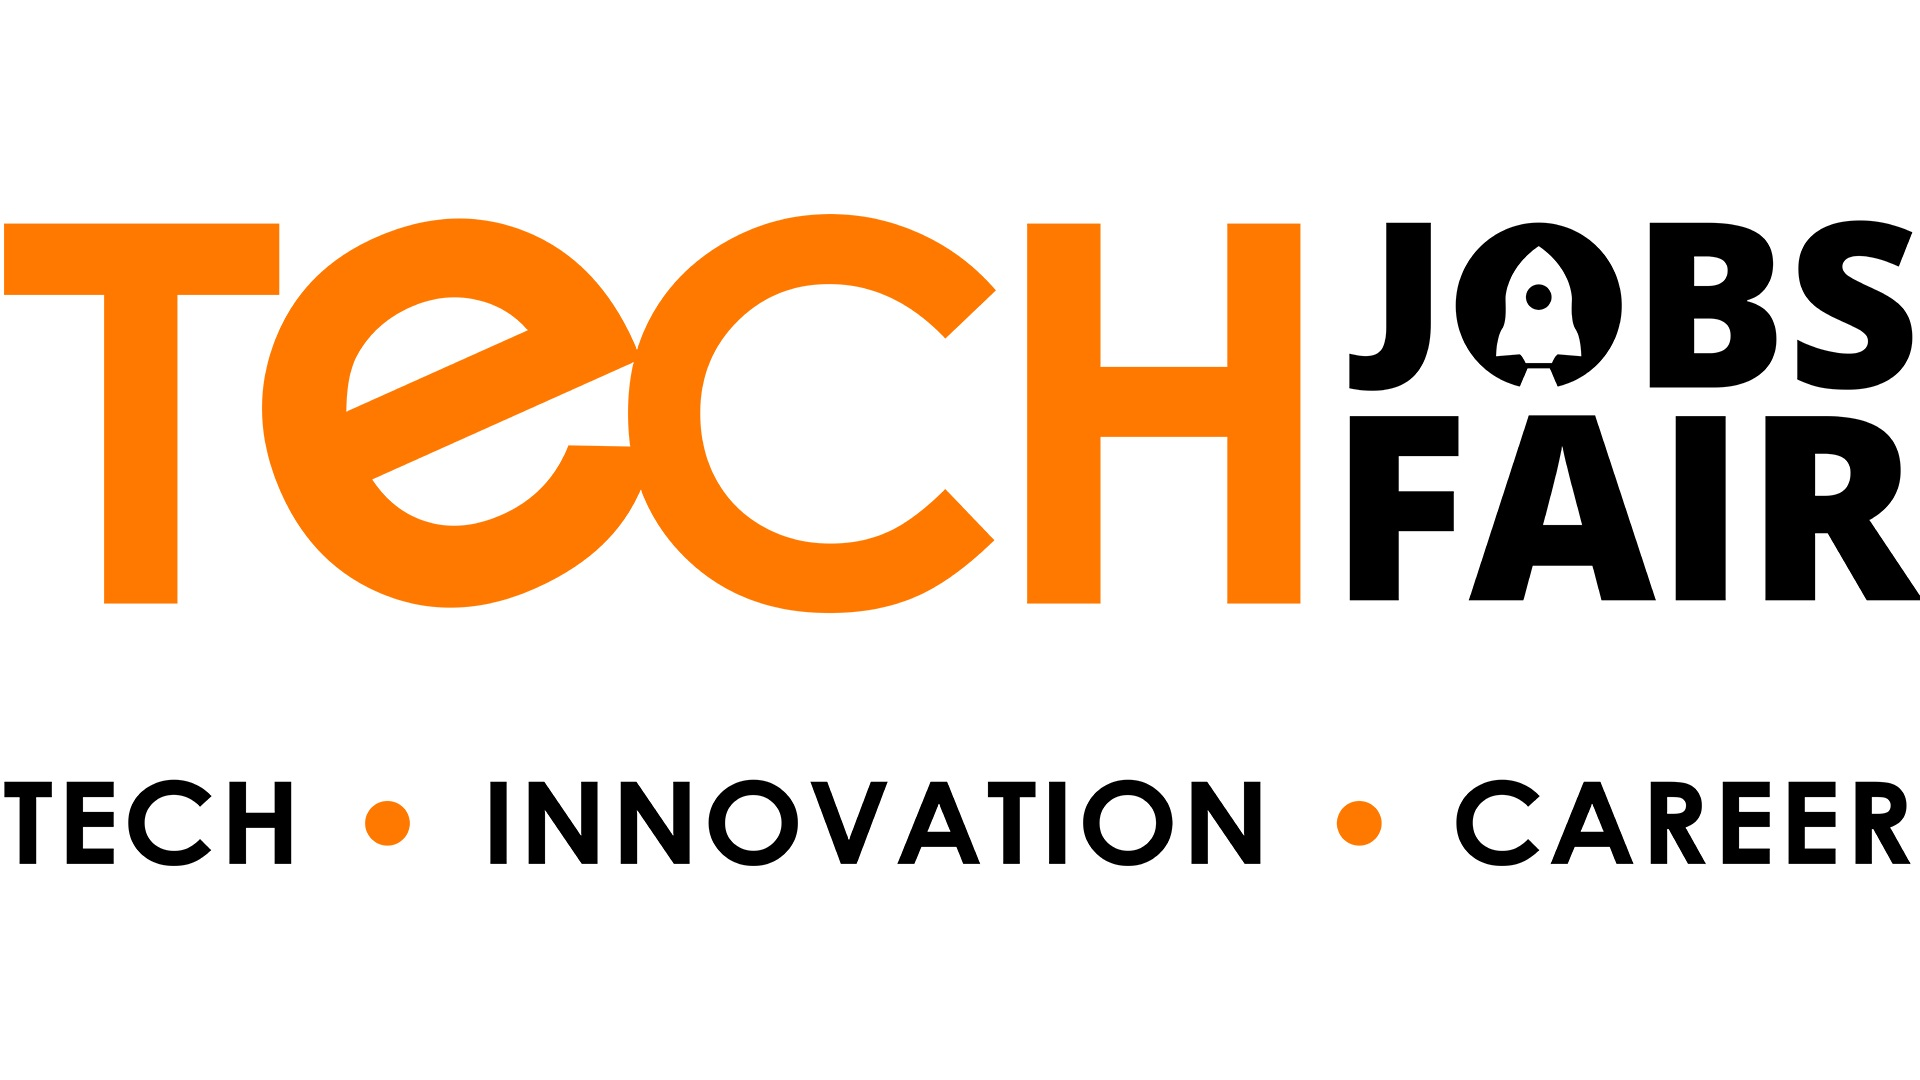 Tech Job fair